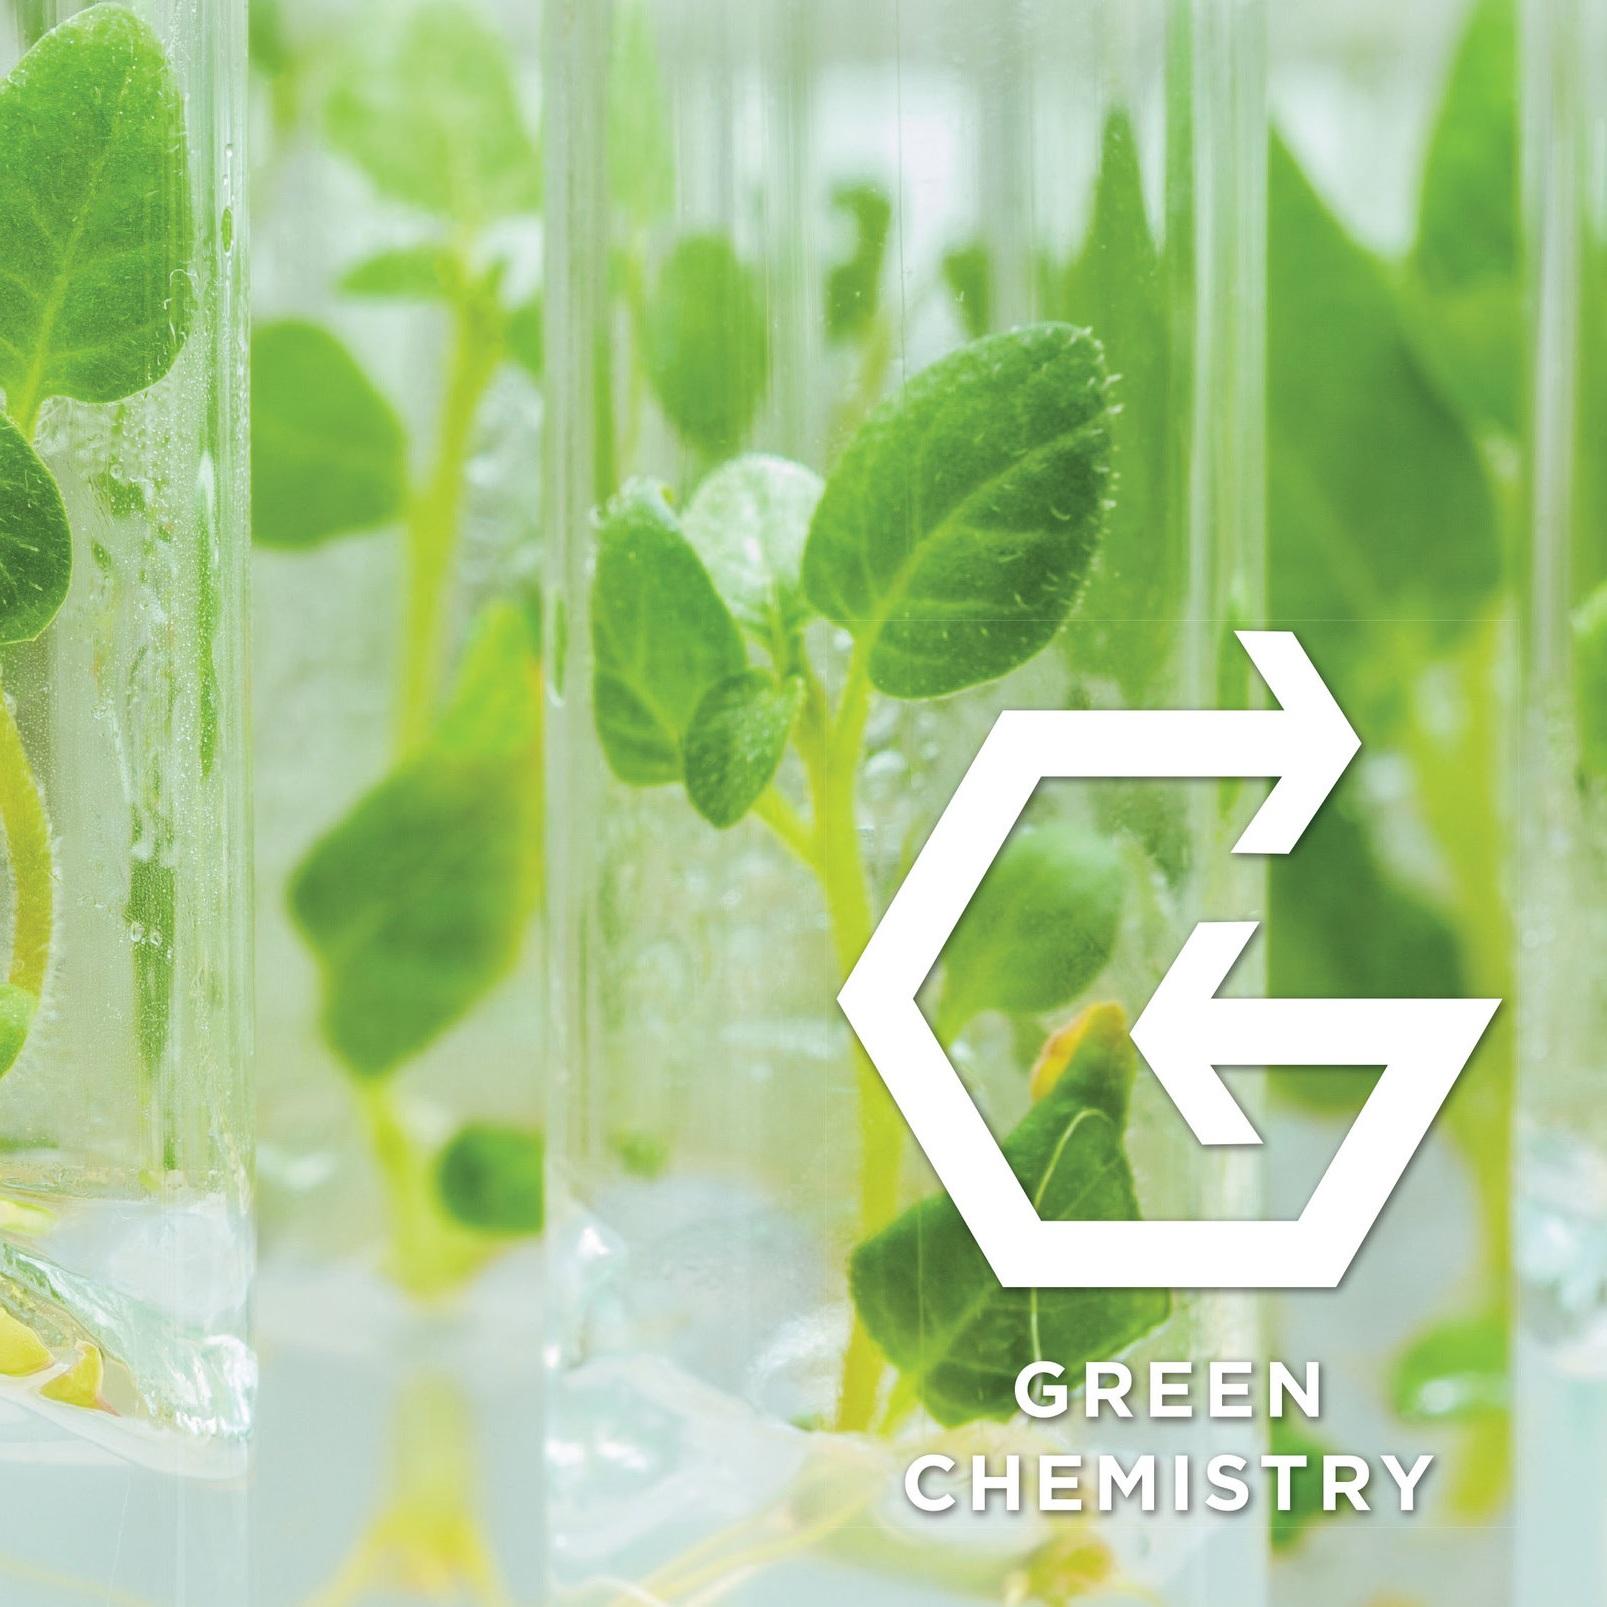 Organic Nation Green Chemistry 840x540px x4V2-1.jpg